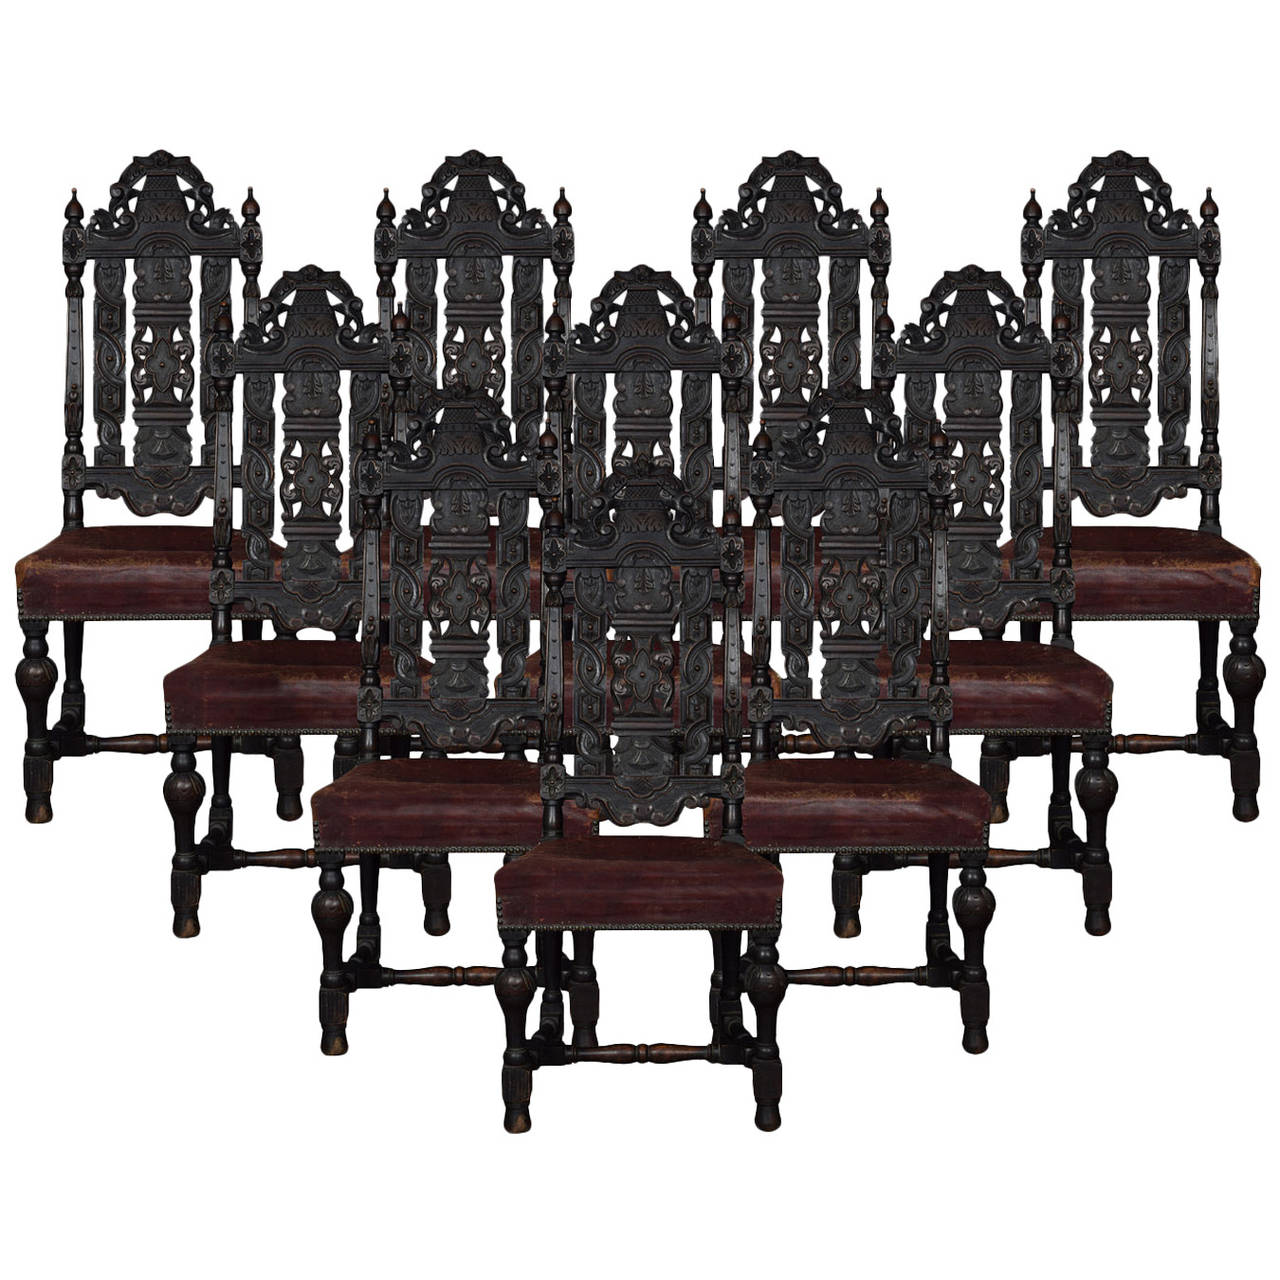 Chair table 17th century - Set Of Ten 17th Century Style Carved Oak Dining Chairs 1